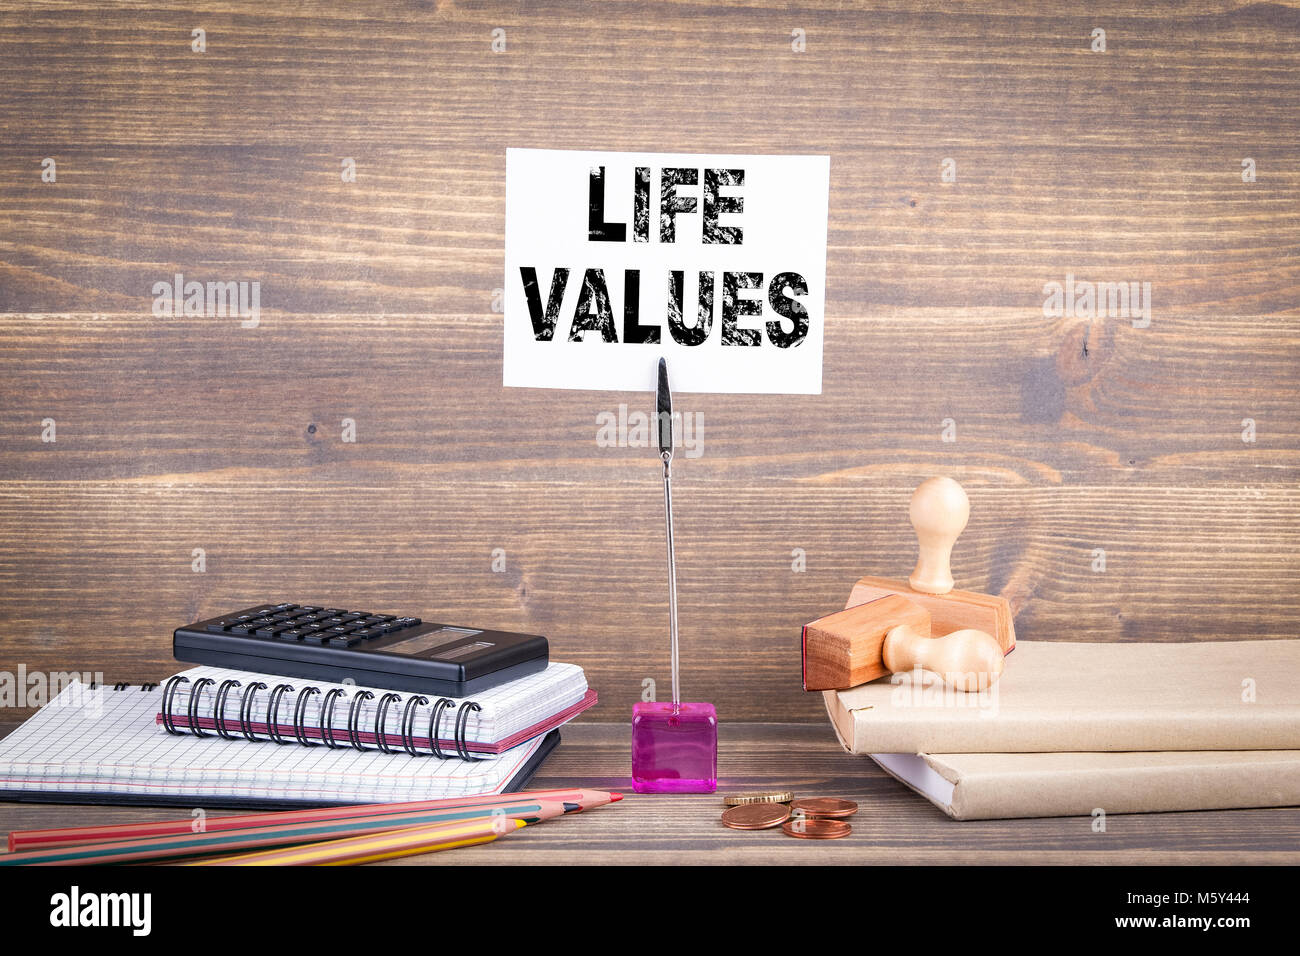 life values. Wooden table with stationery - Stock Image